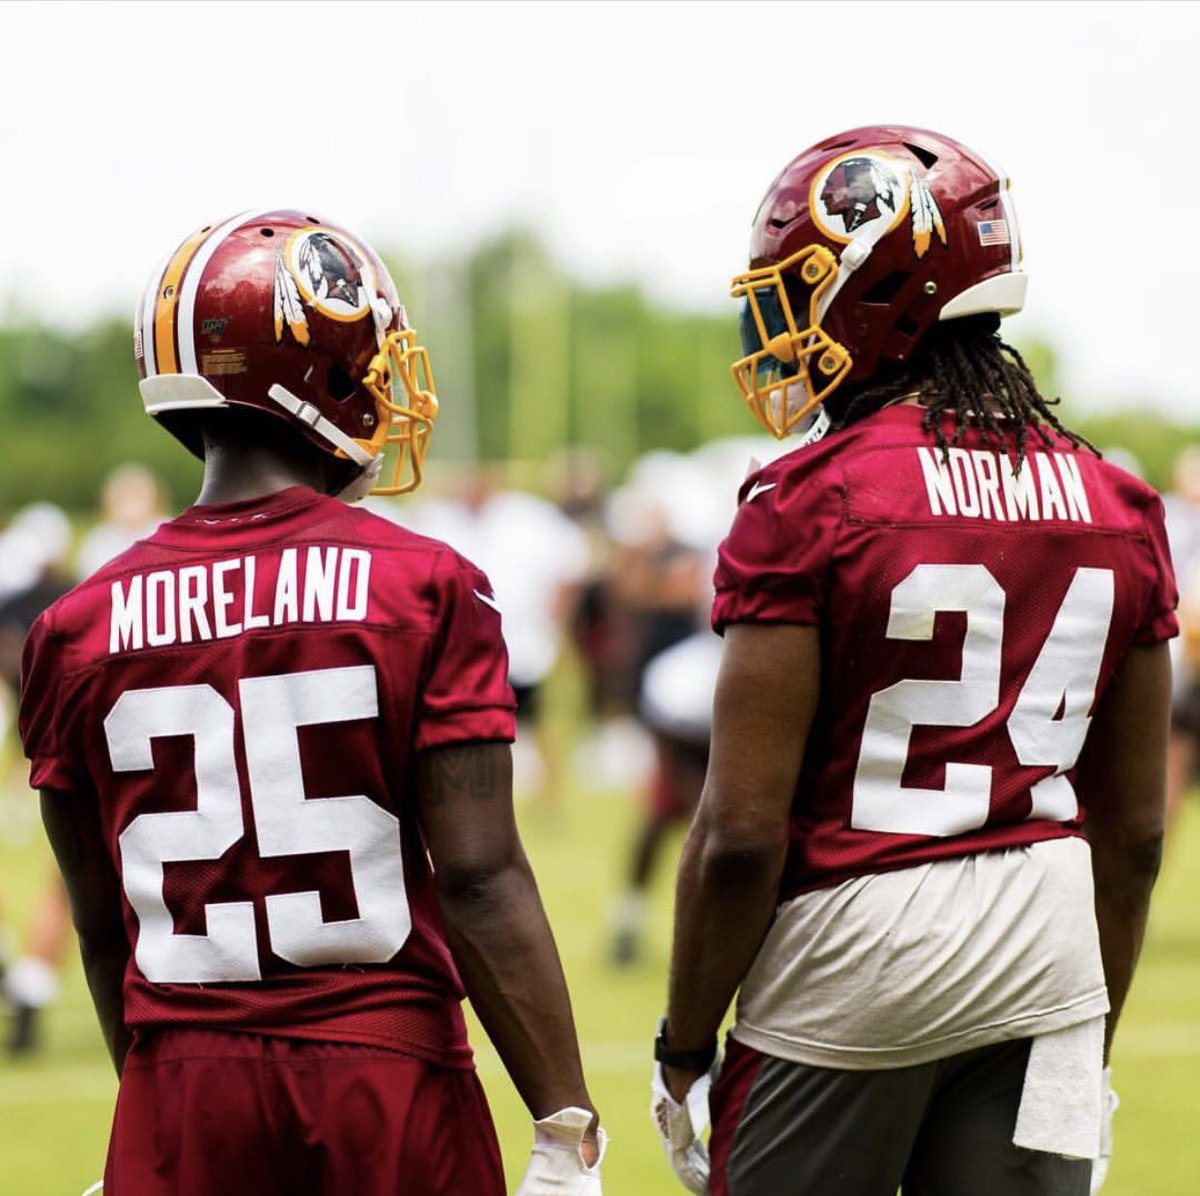 Nothing new since a youngin I always been around the OGs💂🏾♂️💯 @J_No24